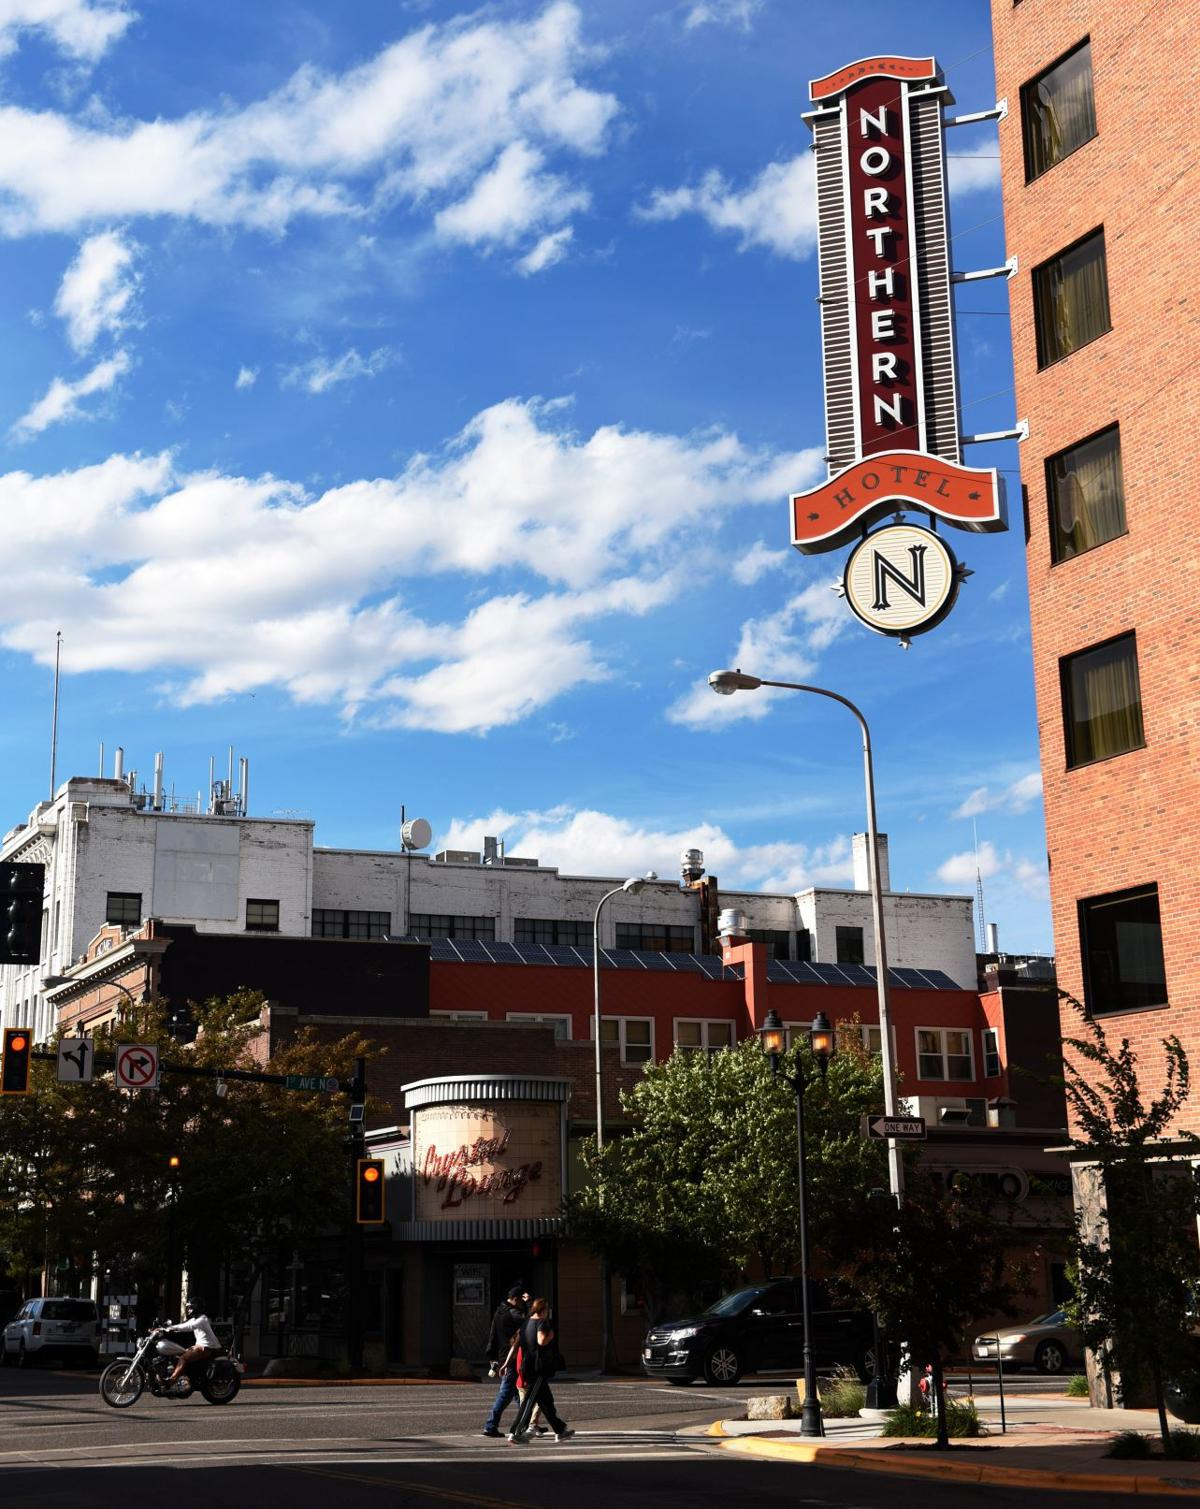 Northern Hotel and downtown Billings